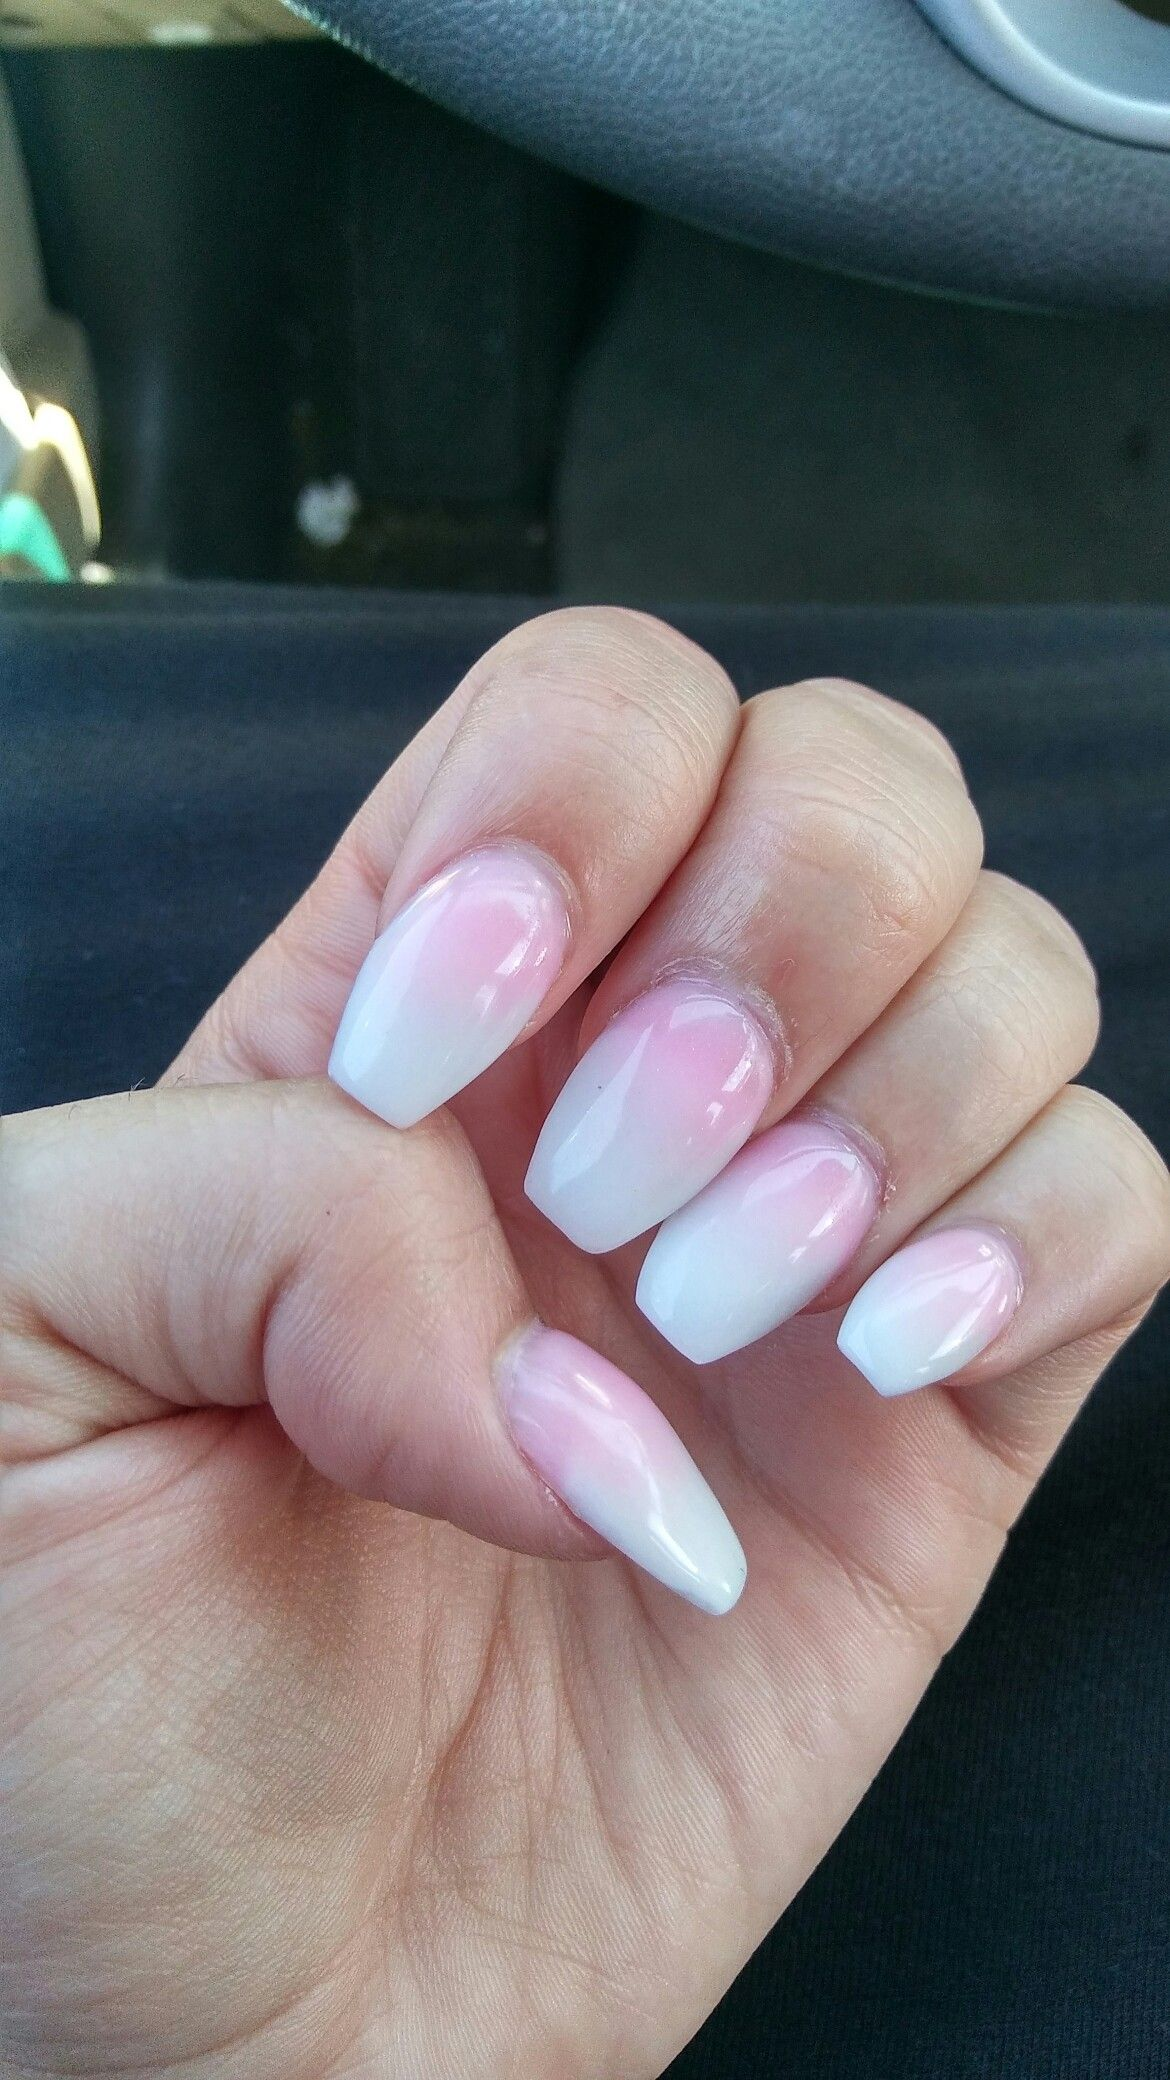 Short Coffin Acrylic Nails Pink And White Ombre Coffin Nails Ombre Short Coffin Nails Pink Ombre Nails